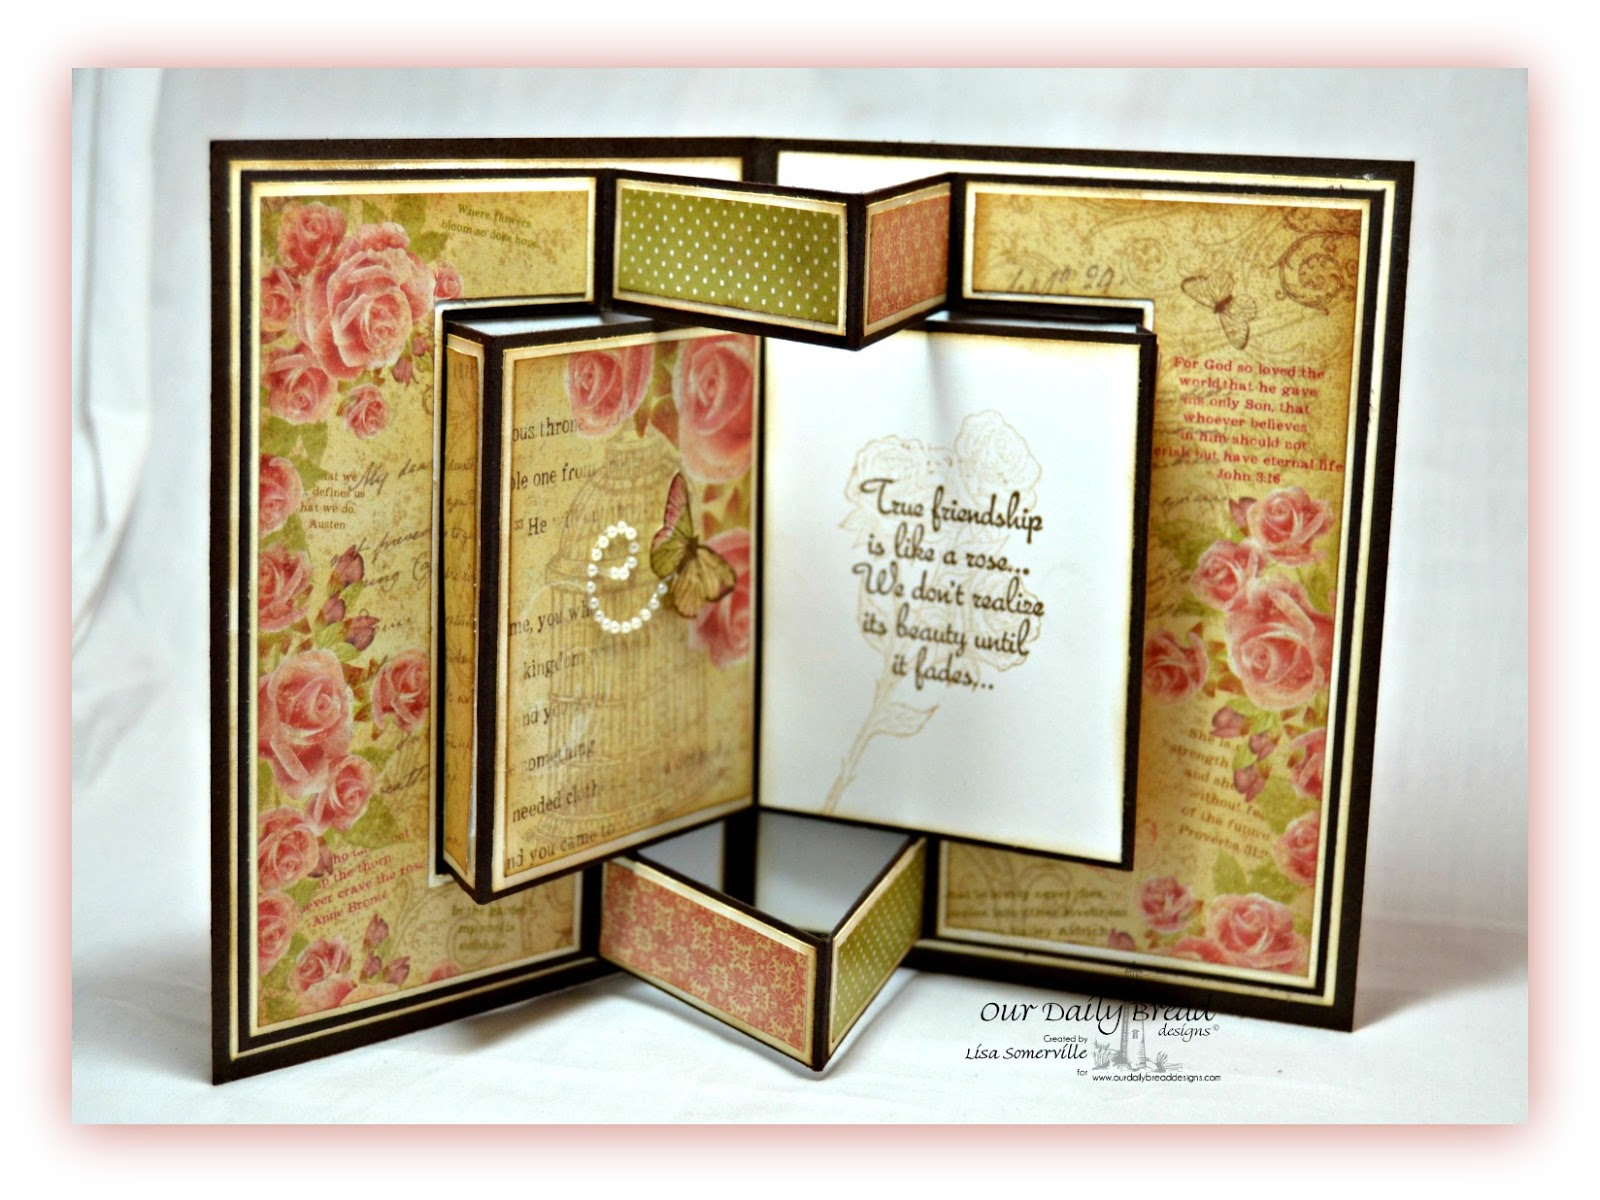 Stamps - Our Daily Bread Designs Rose, My Friend, Faith, ODBD Blushing Rose Paper Collection